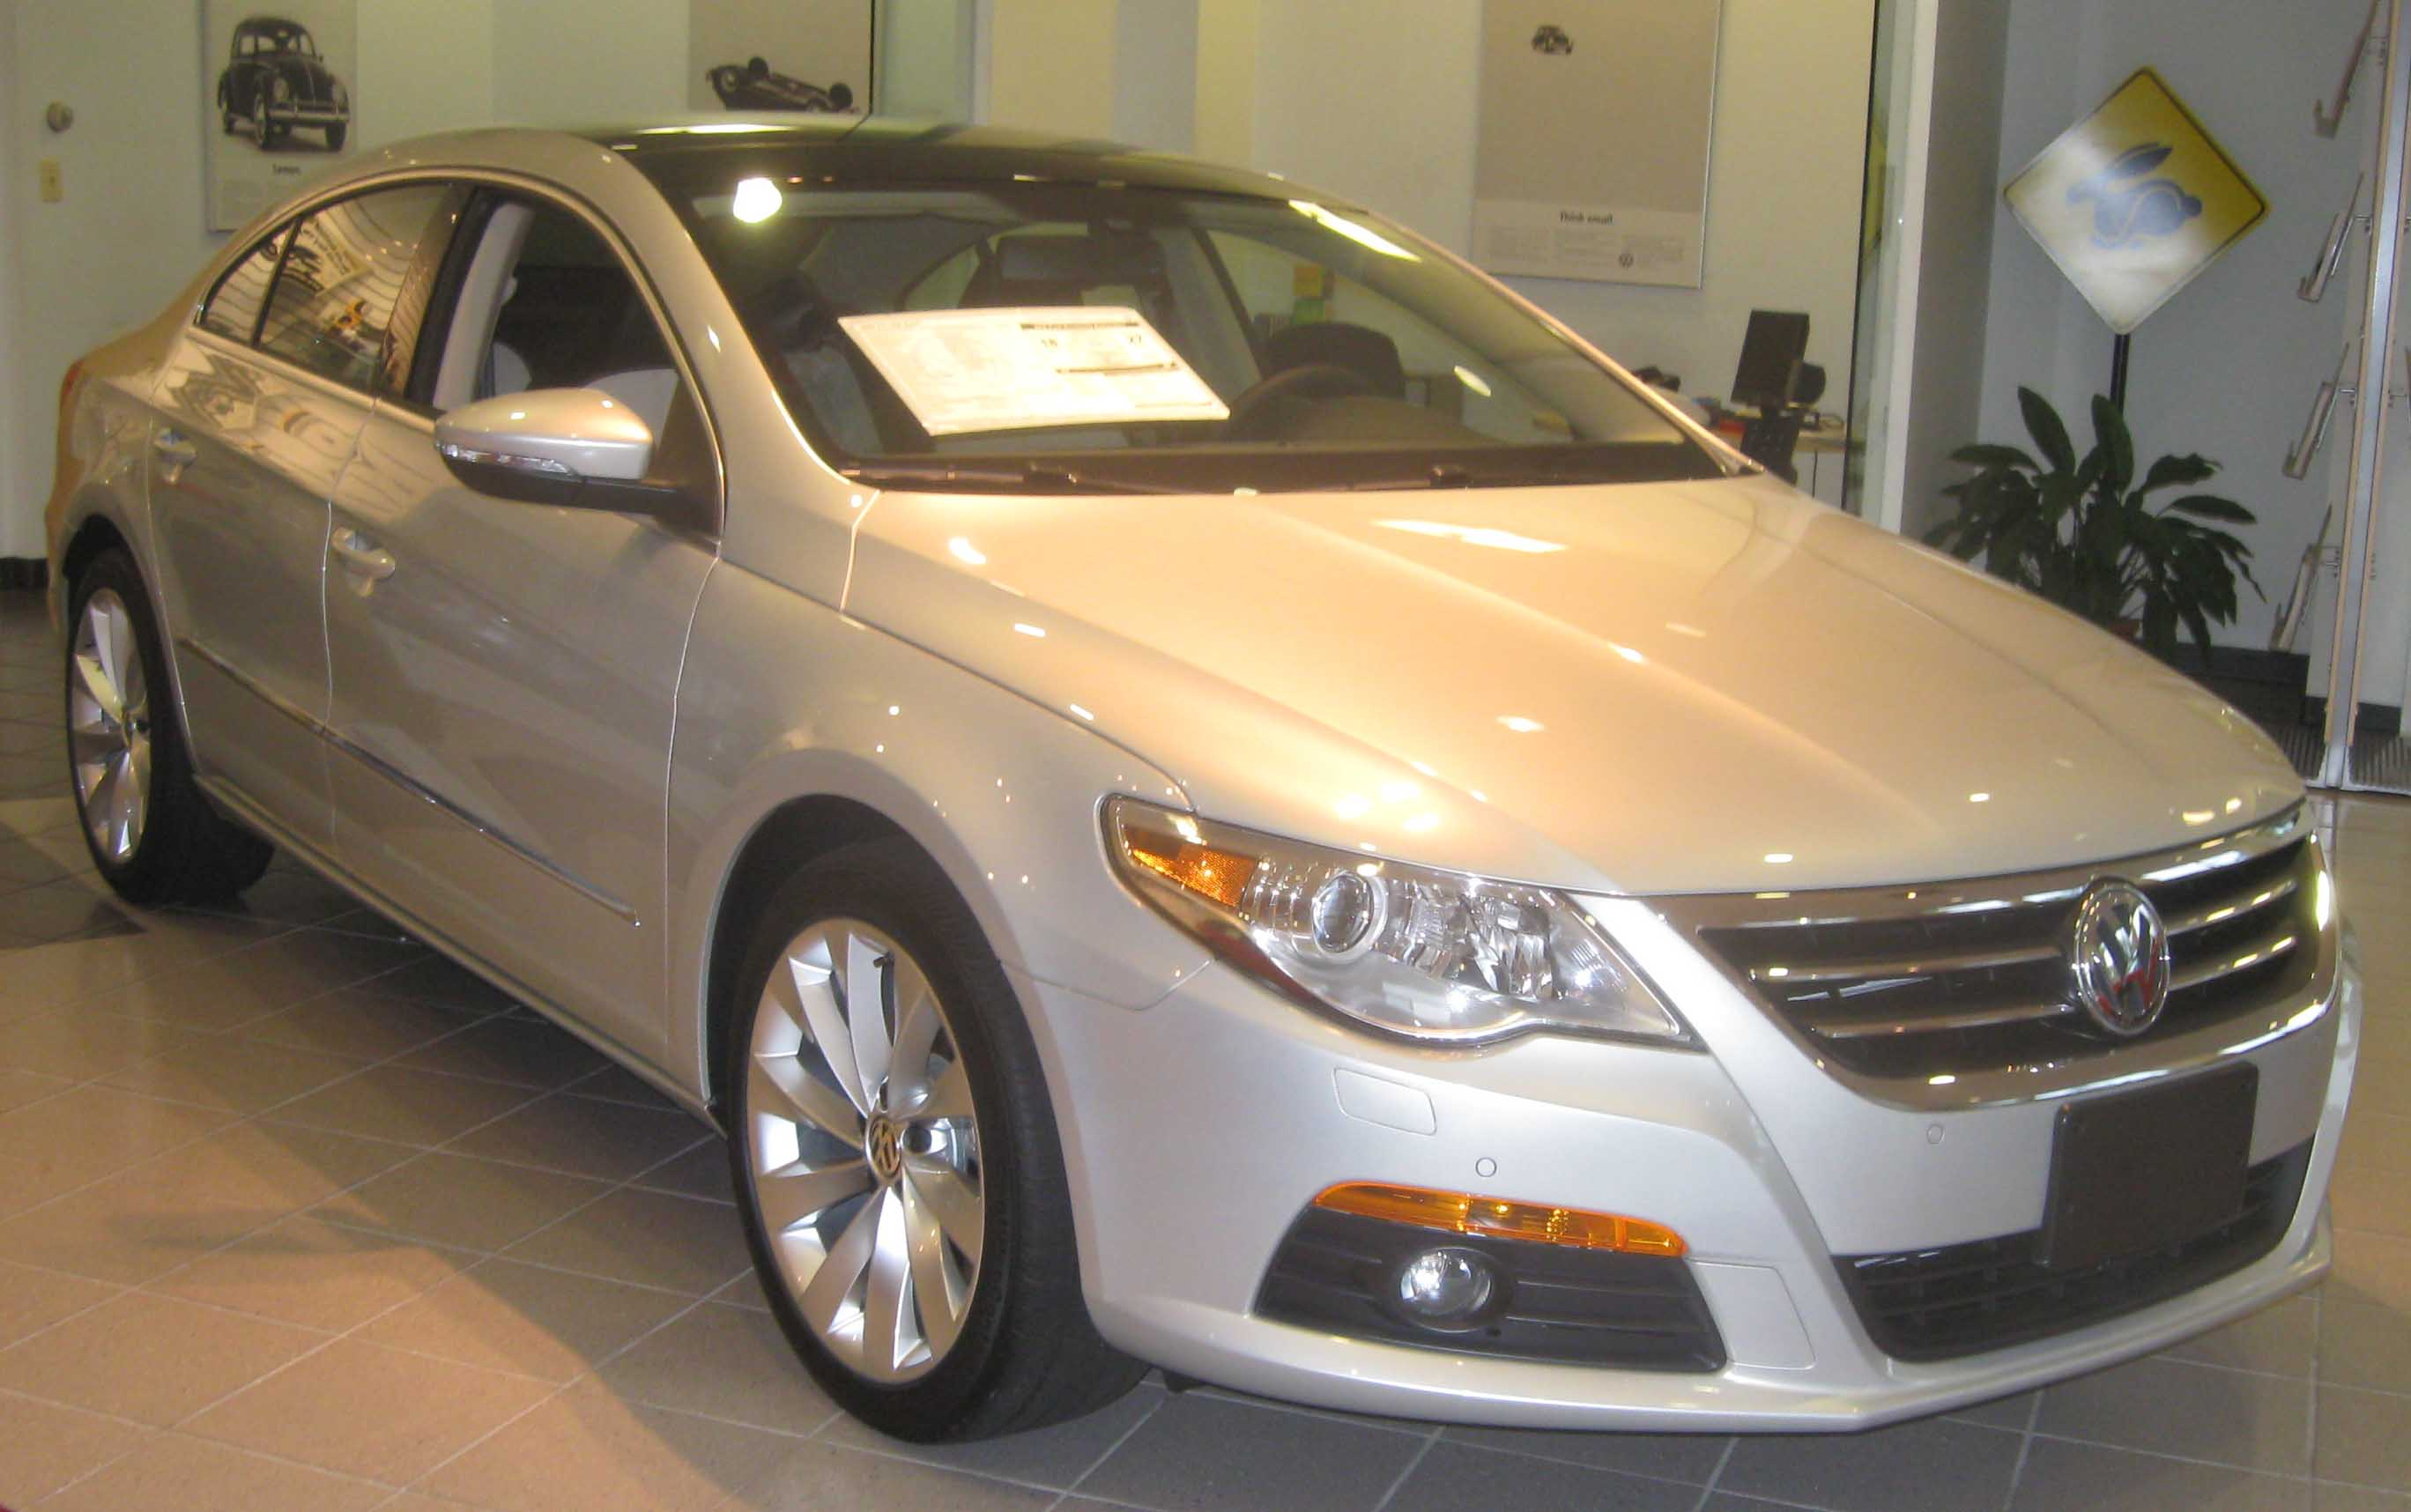 sale registered england used haris car loughborough road motor number for ltd passat sales office company in leicestershire volkswagen